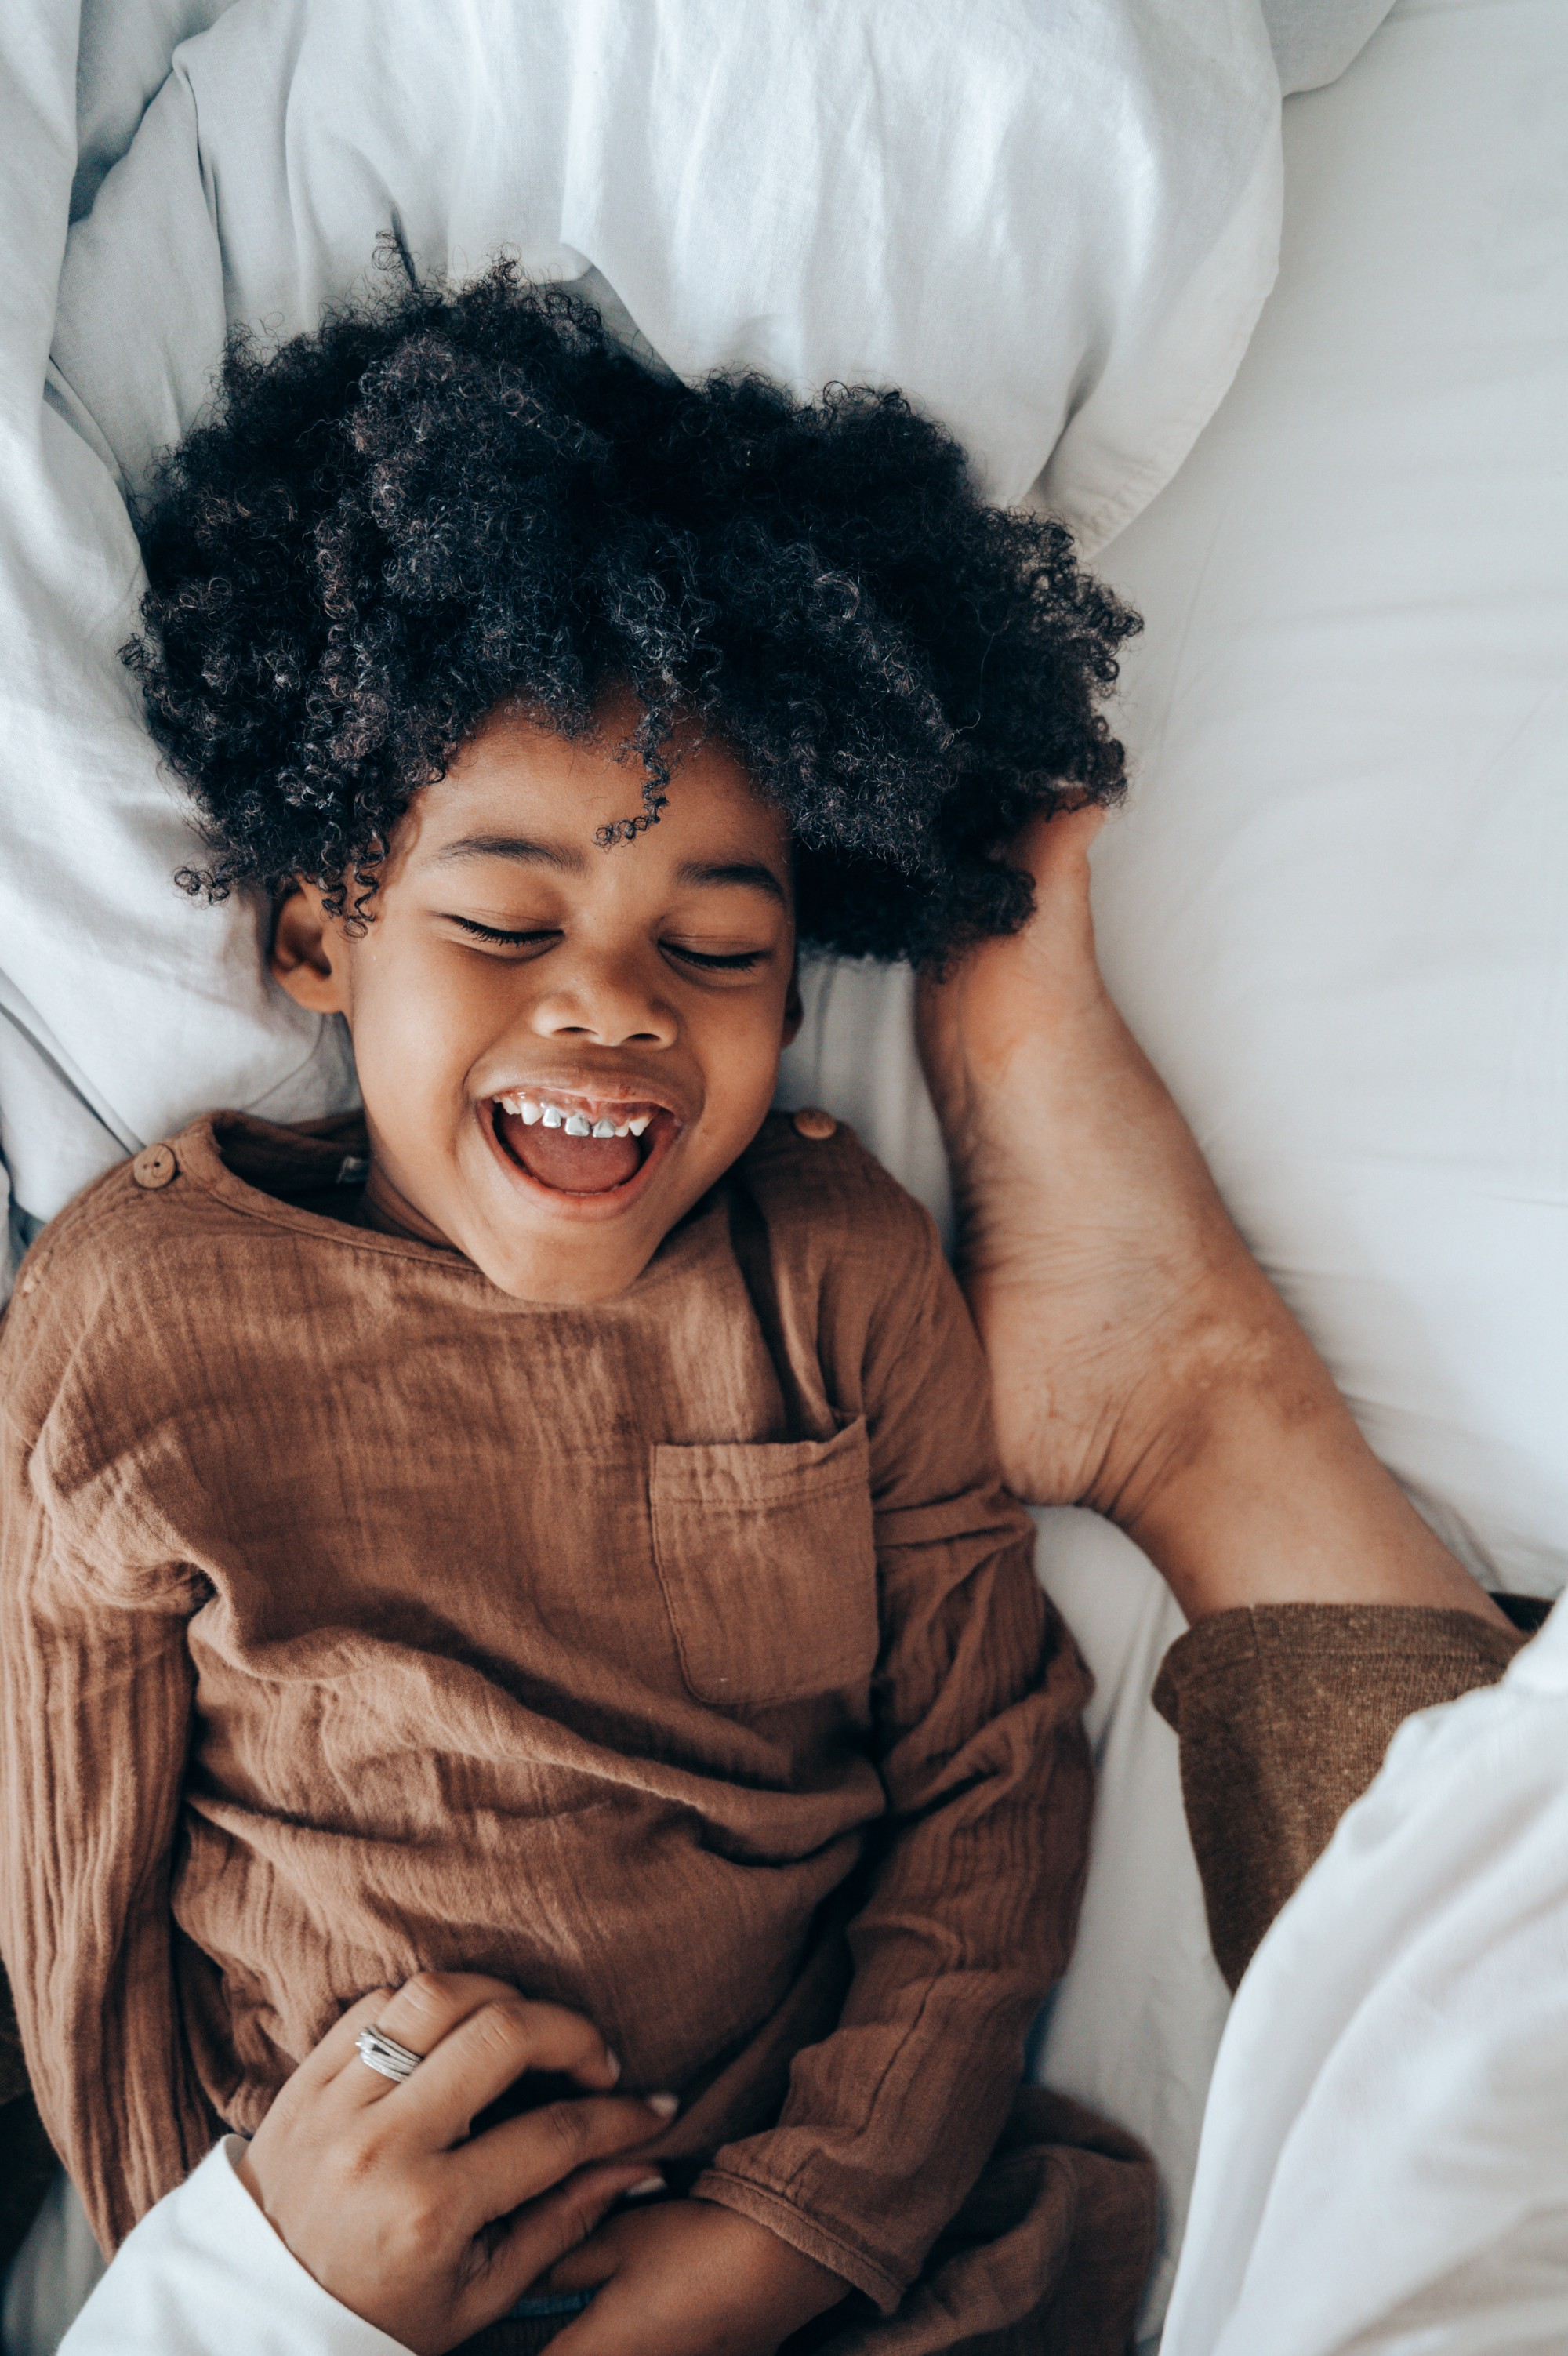 A Black child under five in the bed laughing. It looks like his mother is tickling him.